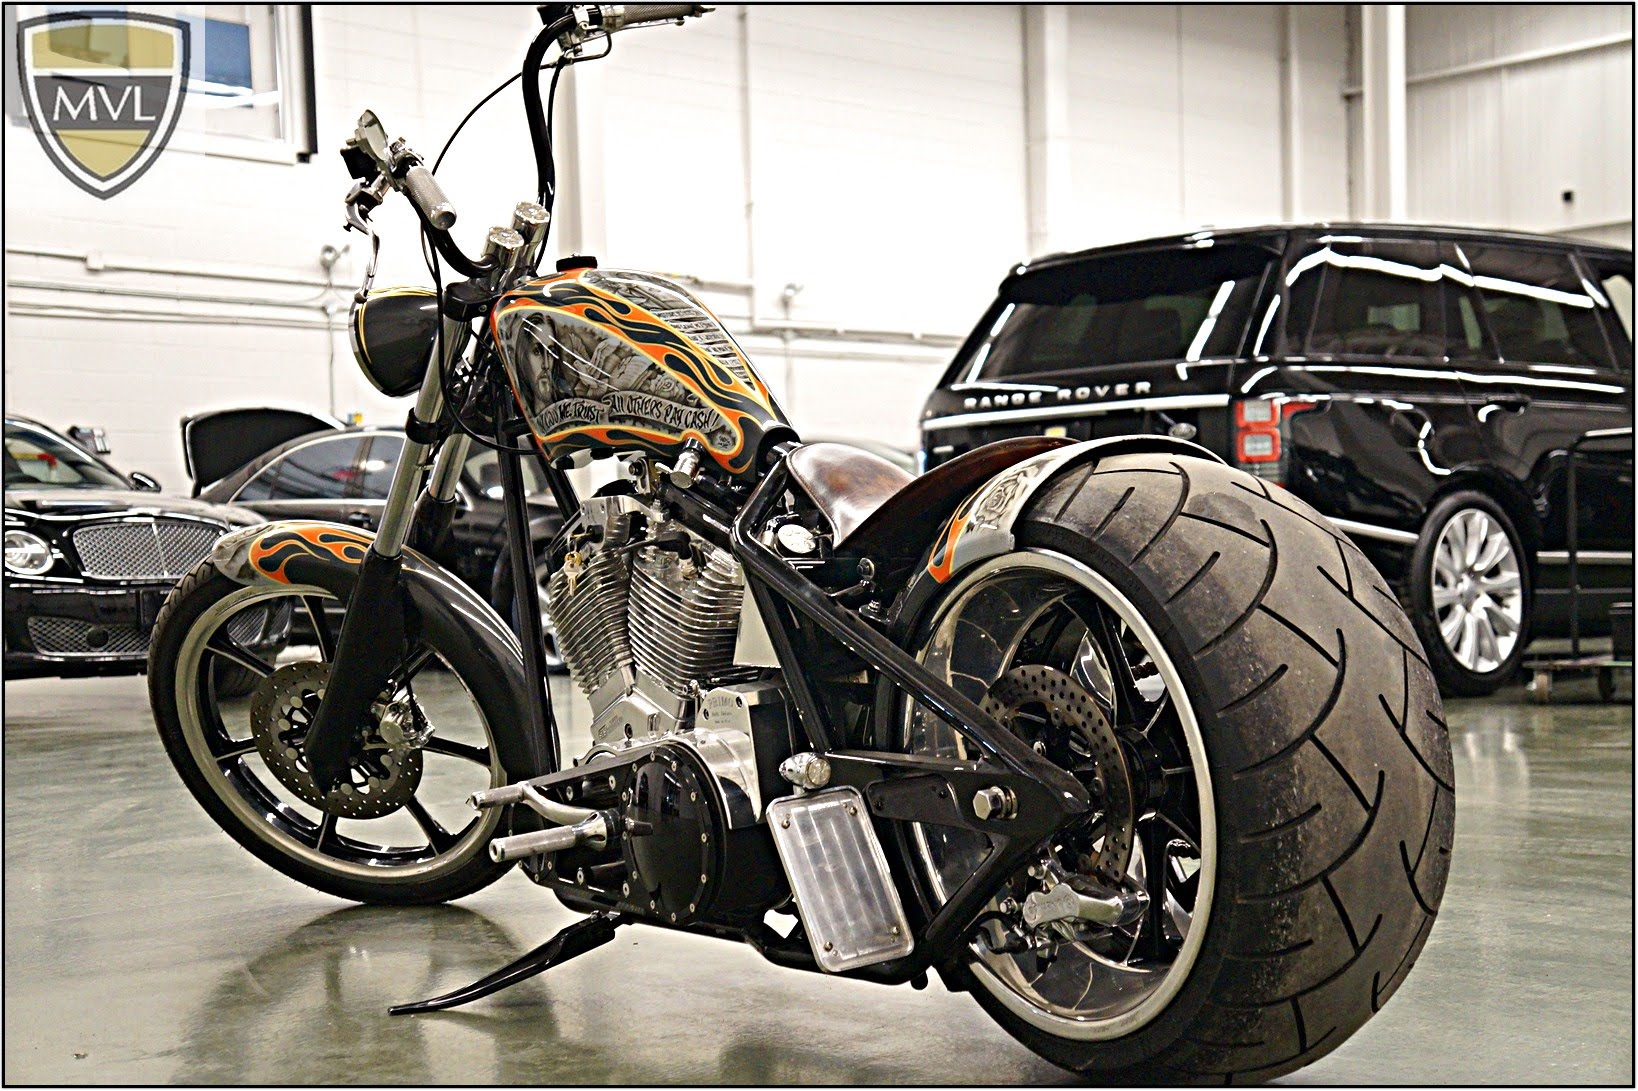 West Coast Choppers #2